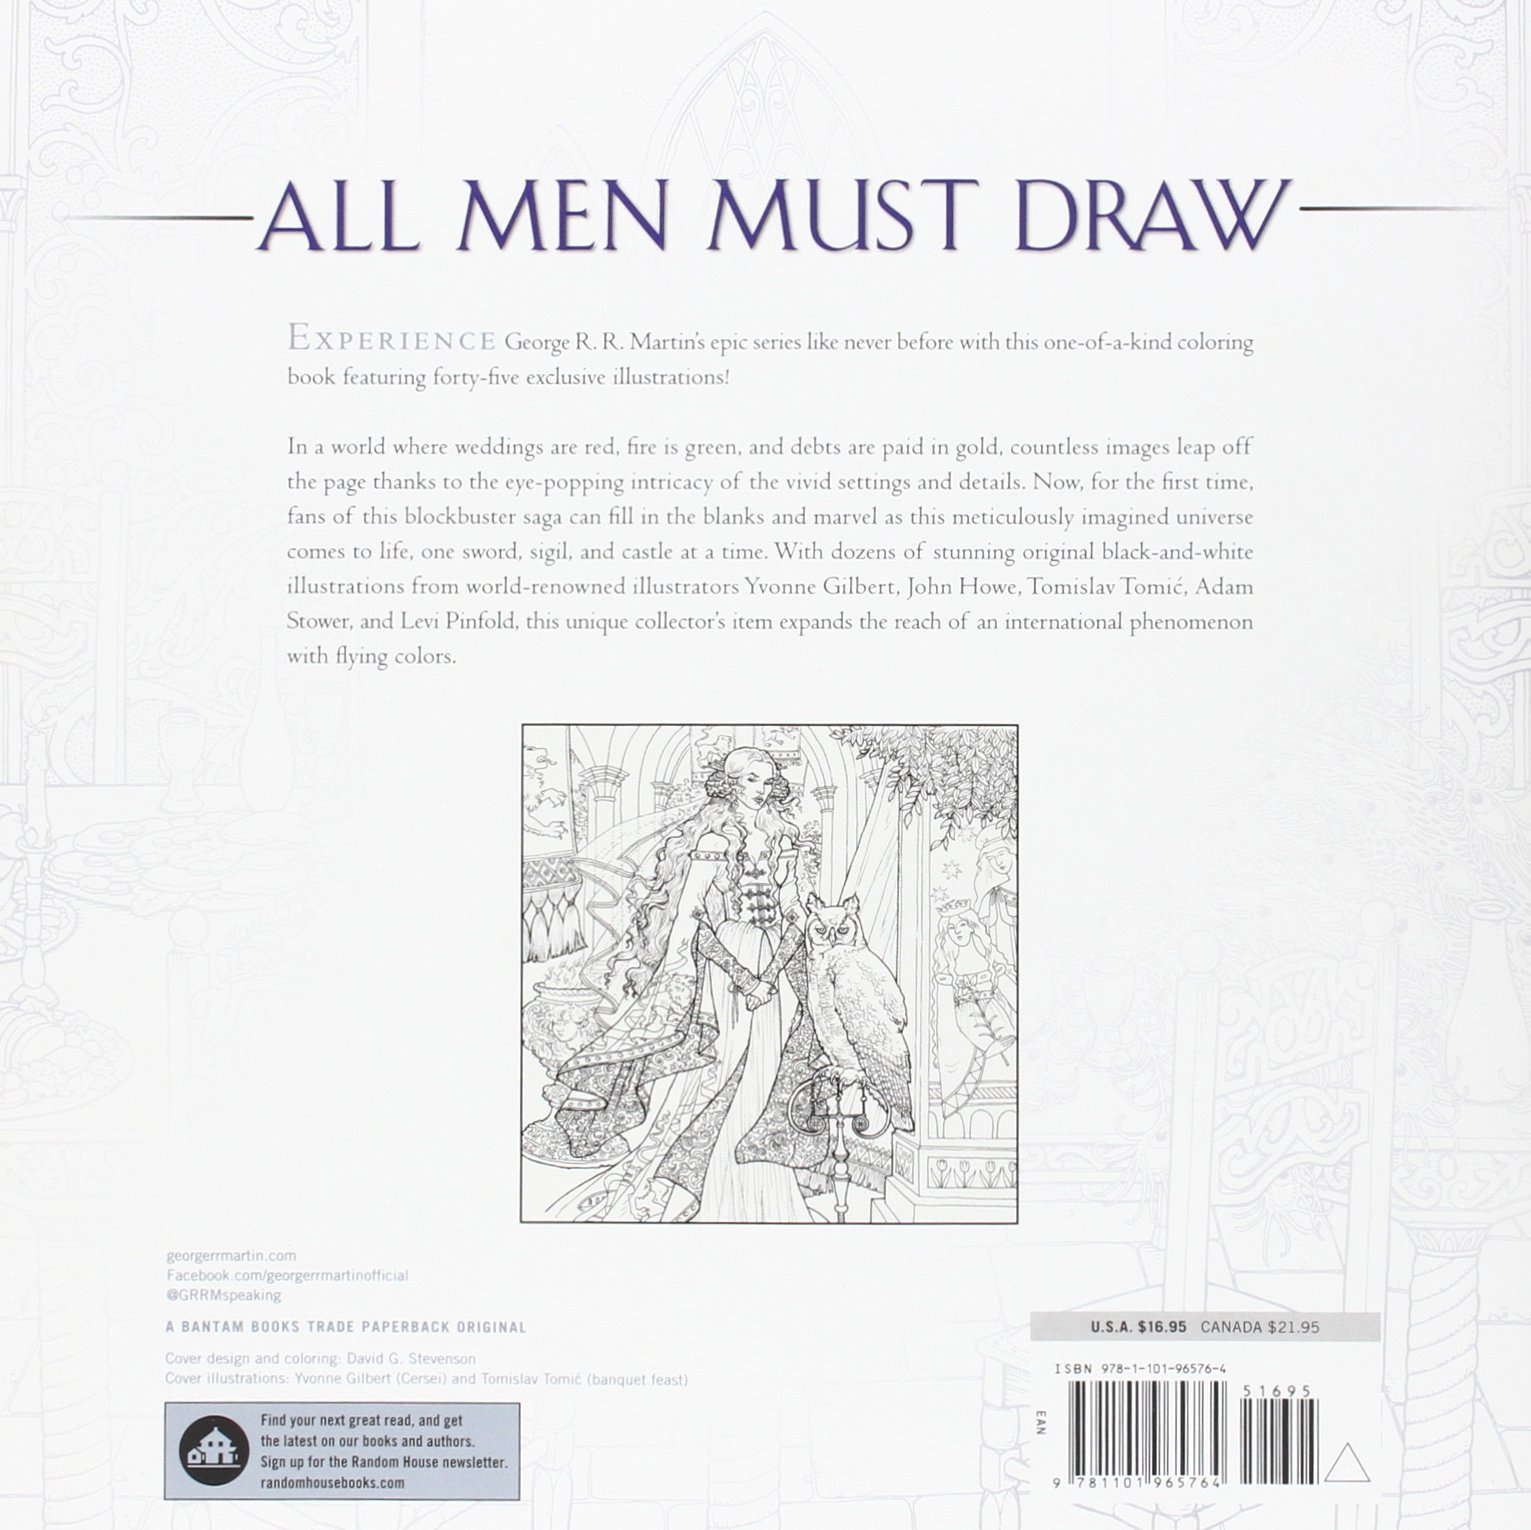 X men coloring online games - Amazon Com The Official A Game Of Thrones Coloring Book An Adult Coloring Book A Song Of Ice And Fire 9781101965764 George R R Martin Books